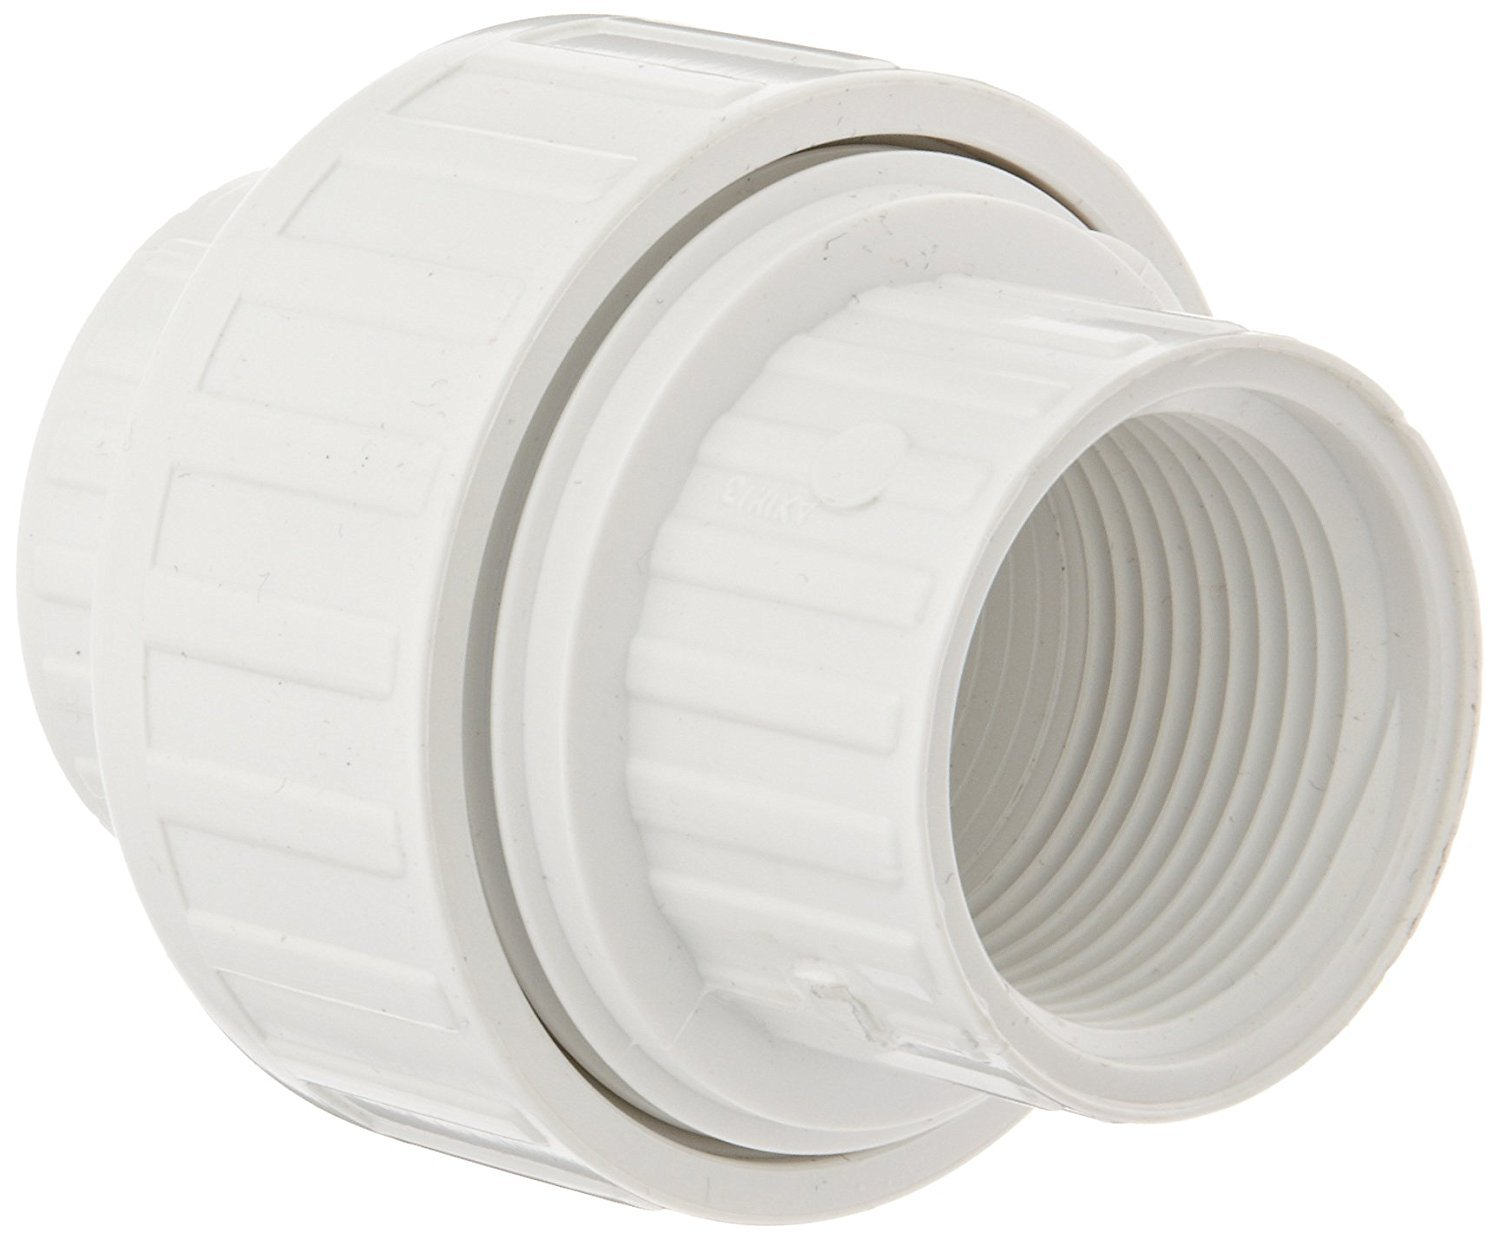 Spears 498 Series PVC Pipe Fitting Union with EPDM O-Ring 1 NPT Female Schedule 40